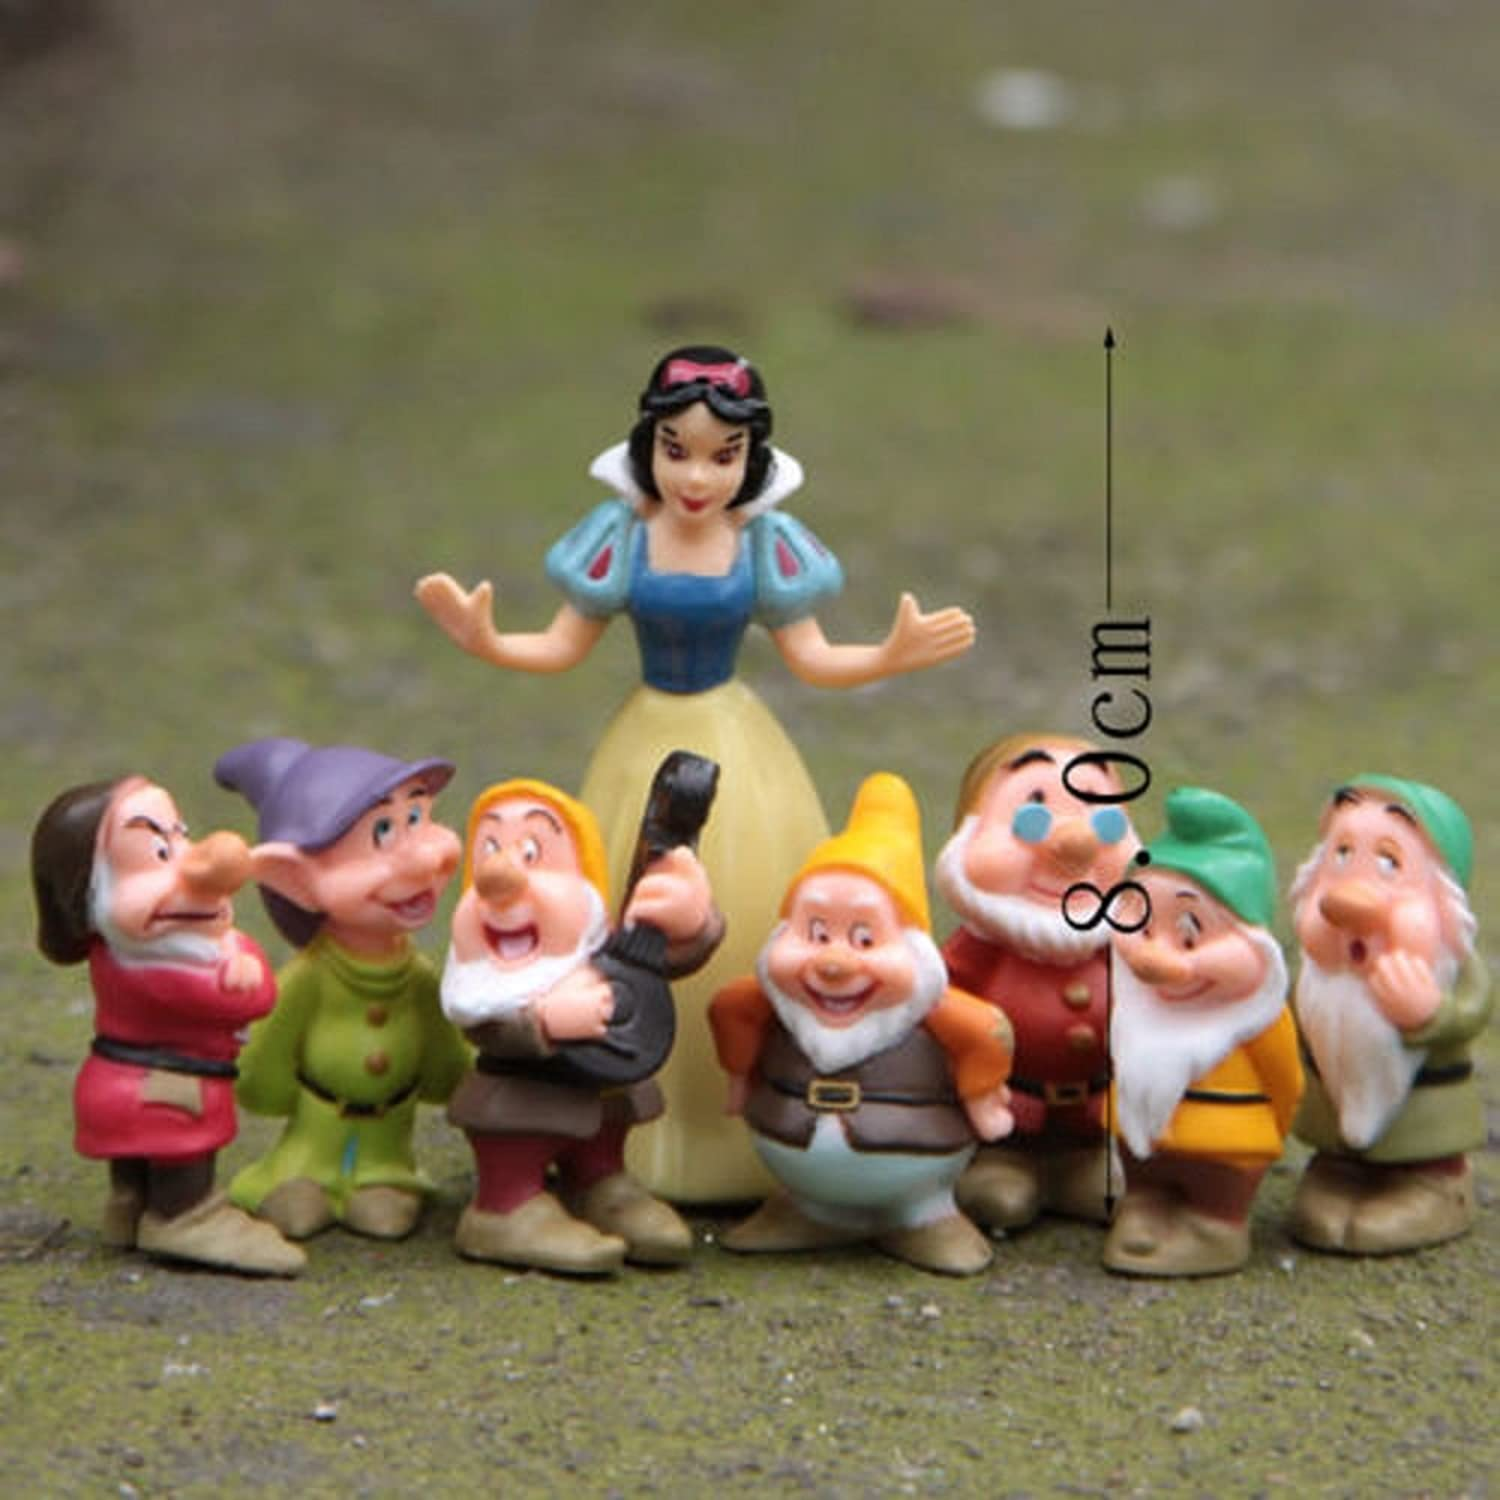 Snow White and the Seven Dwarfs Figures Cake Topper Doll Playset 8pcs Set New